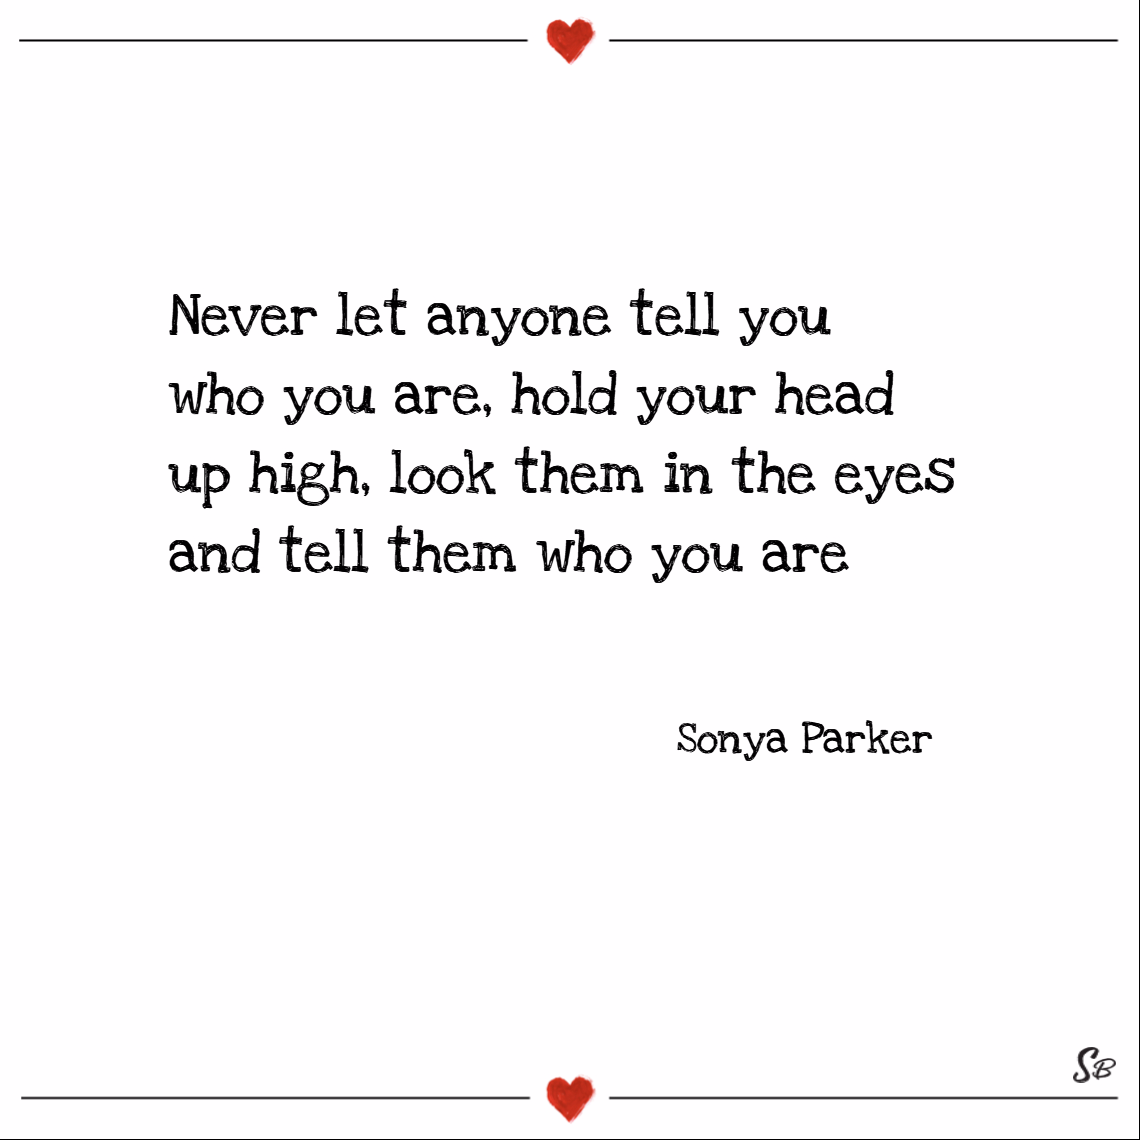 Never let anyone tell you who you are, hold your head up high, look them in the eyes and tell them who you are. – sonya parker